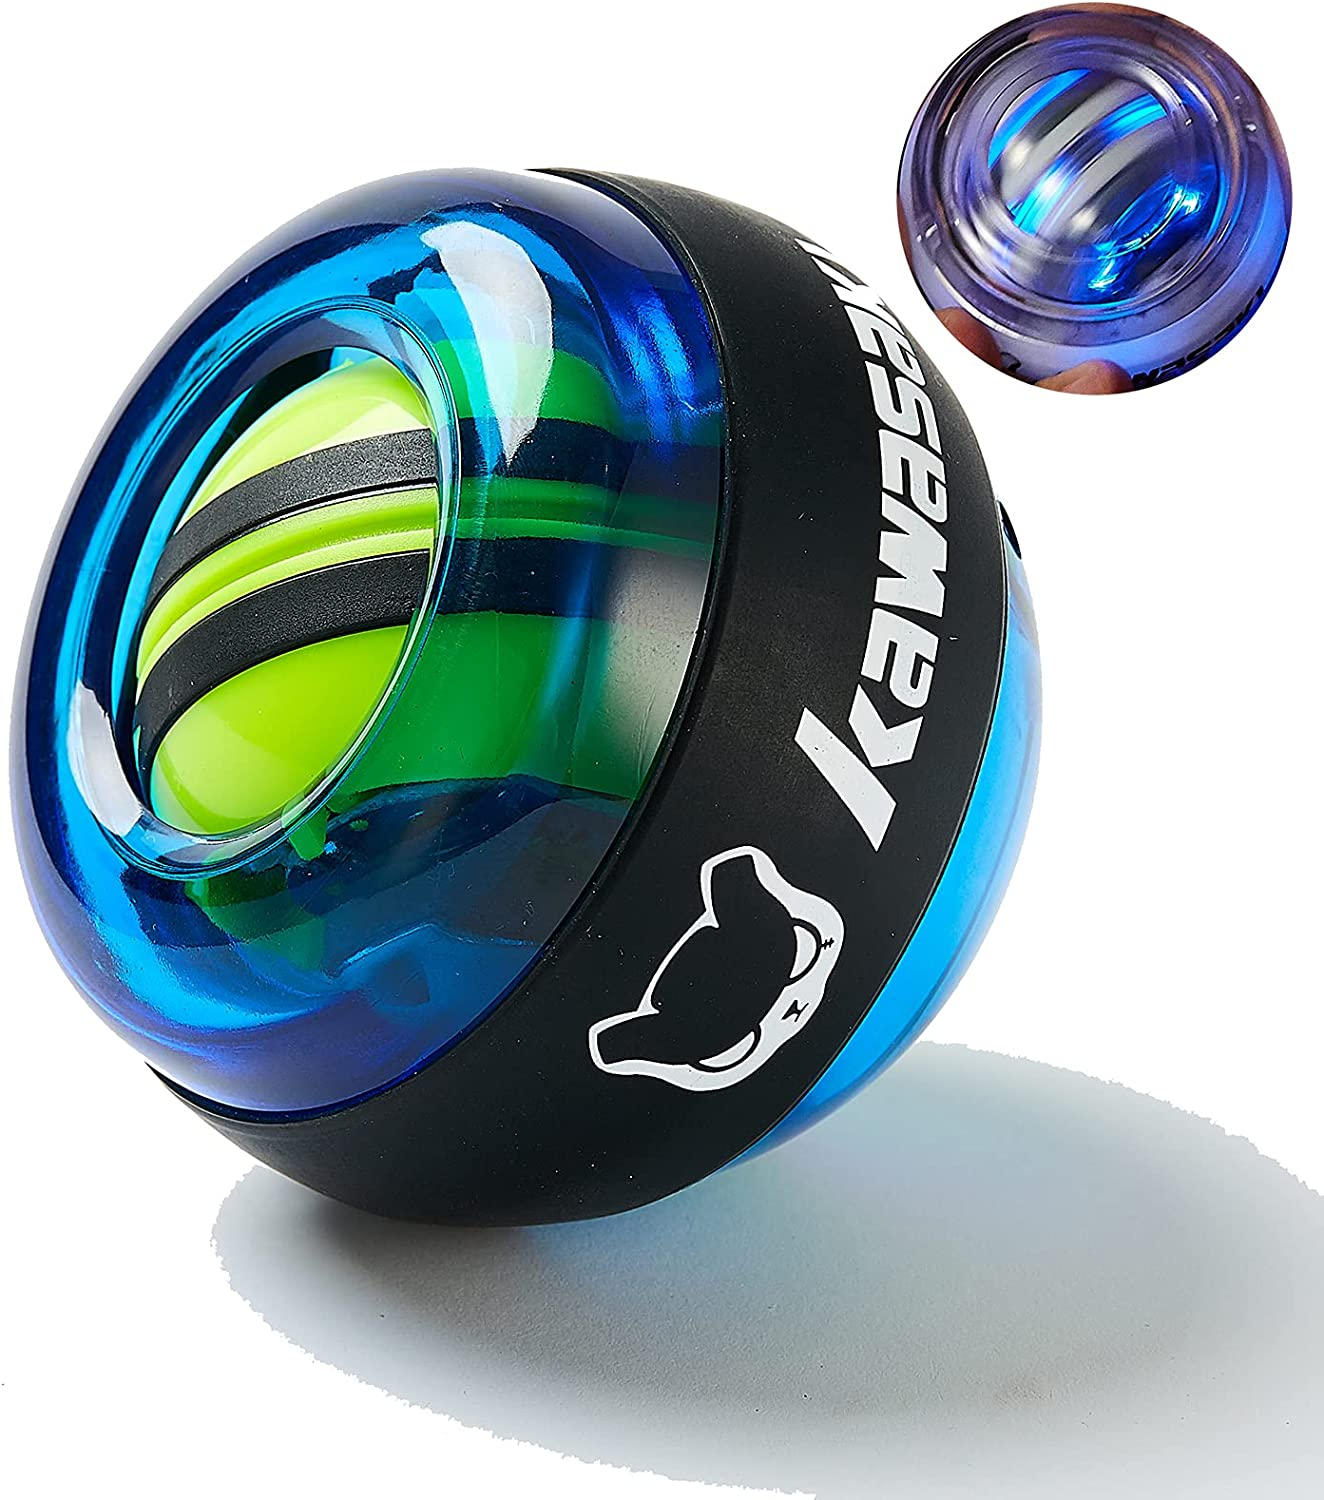 Power Ball Max 58% OFF Max 50% OFF Auto-Start 2.0 Wrist Forearm Exerciser Trainer W